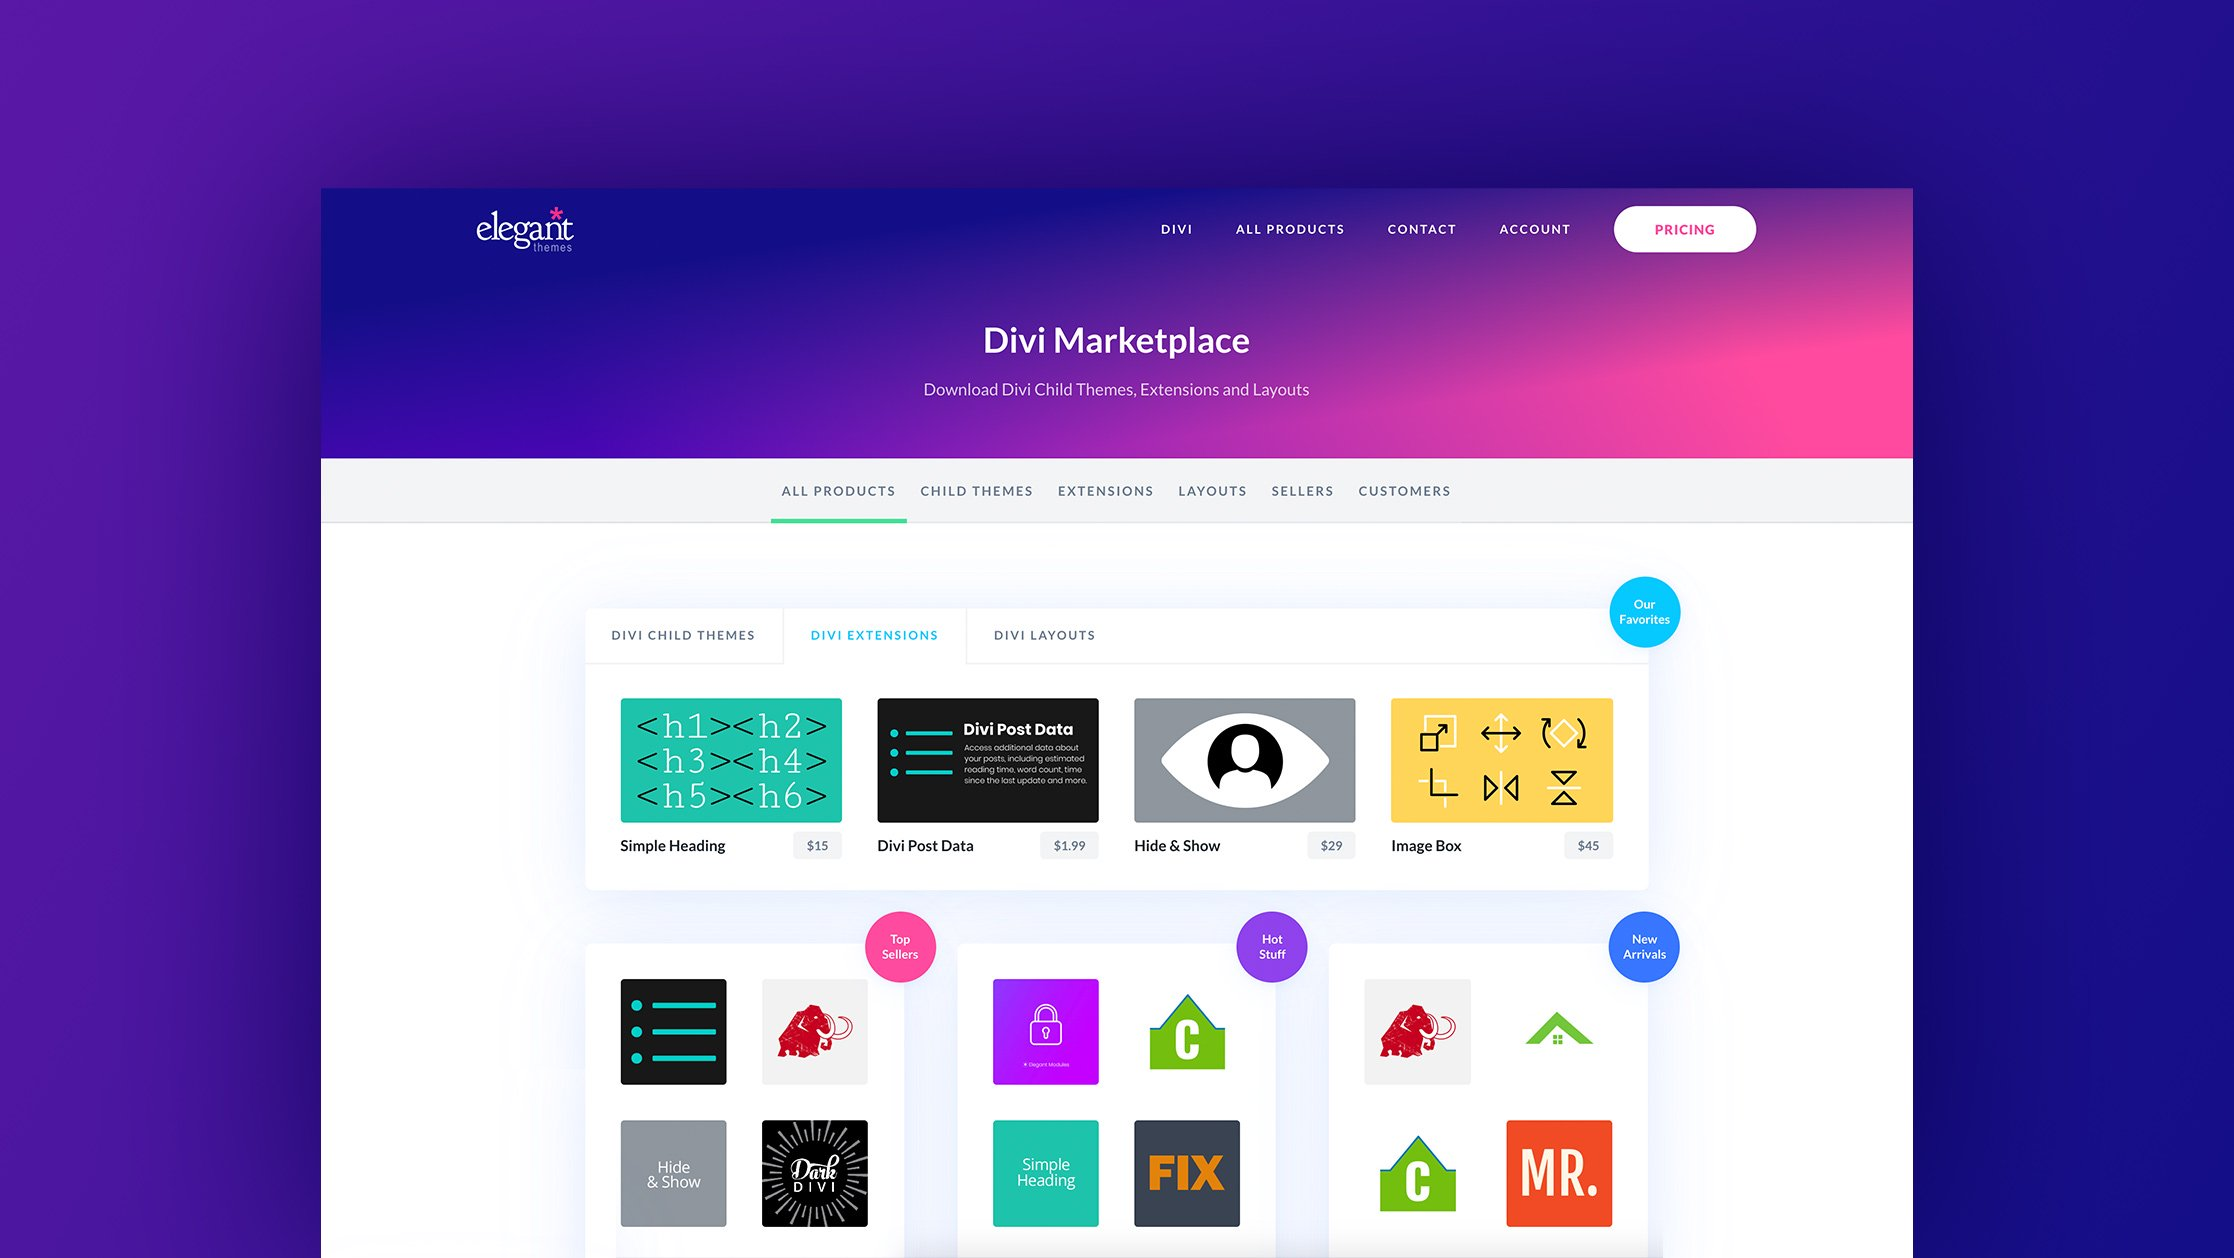 introducing-the-incredible-new-way-to-design-divi-websites Introducing The Incredible New Way To Design Divi Websites